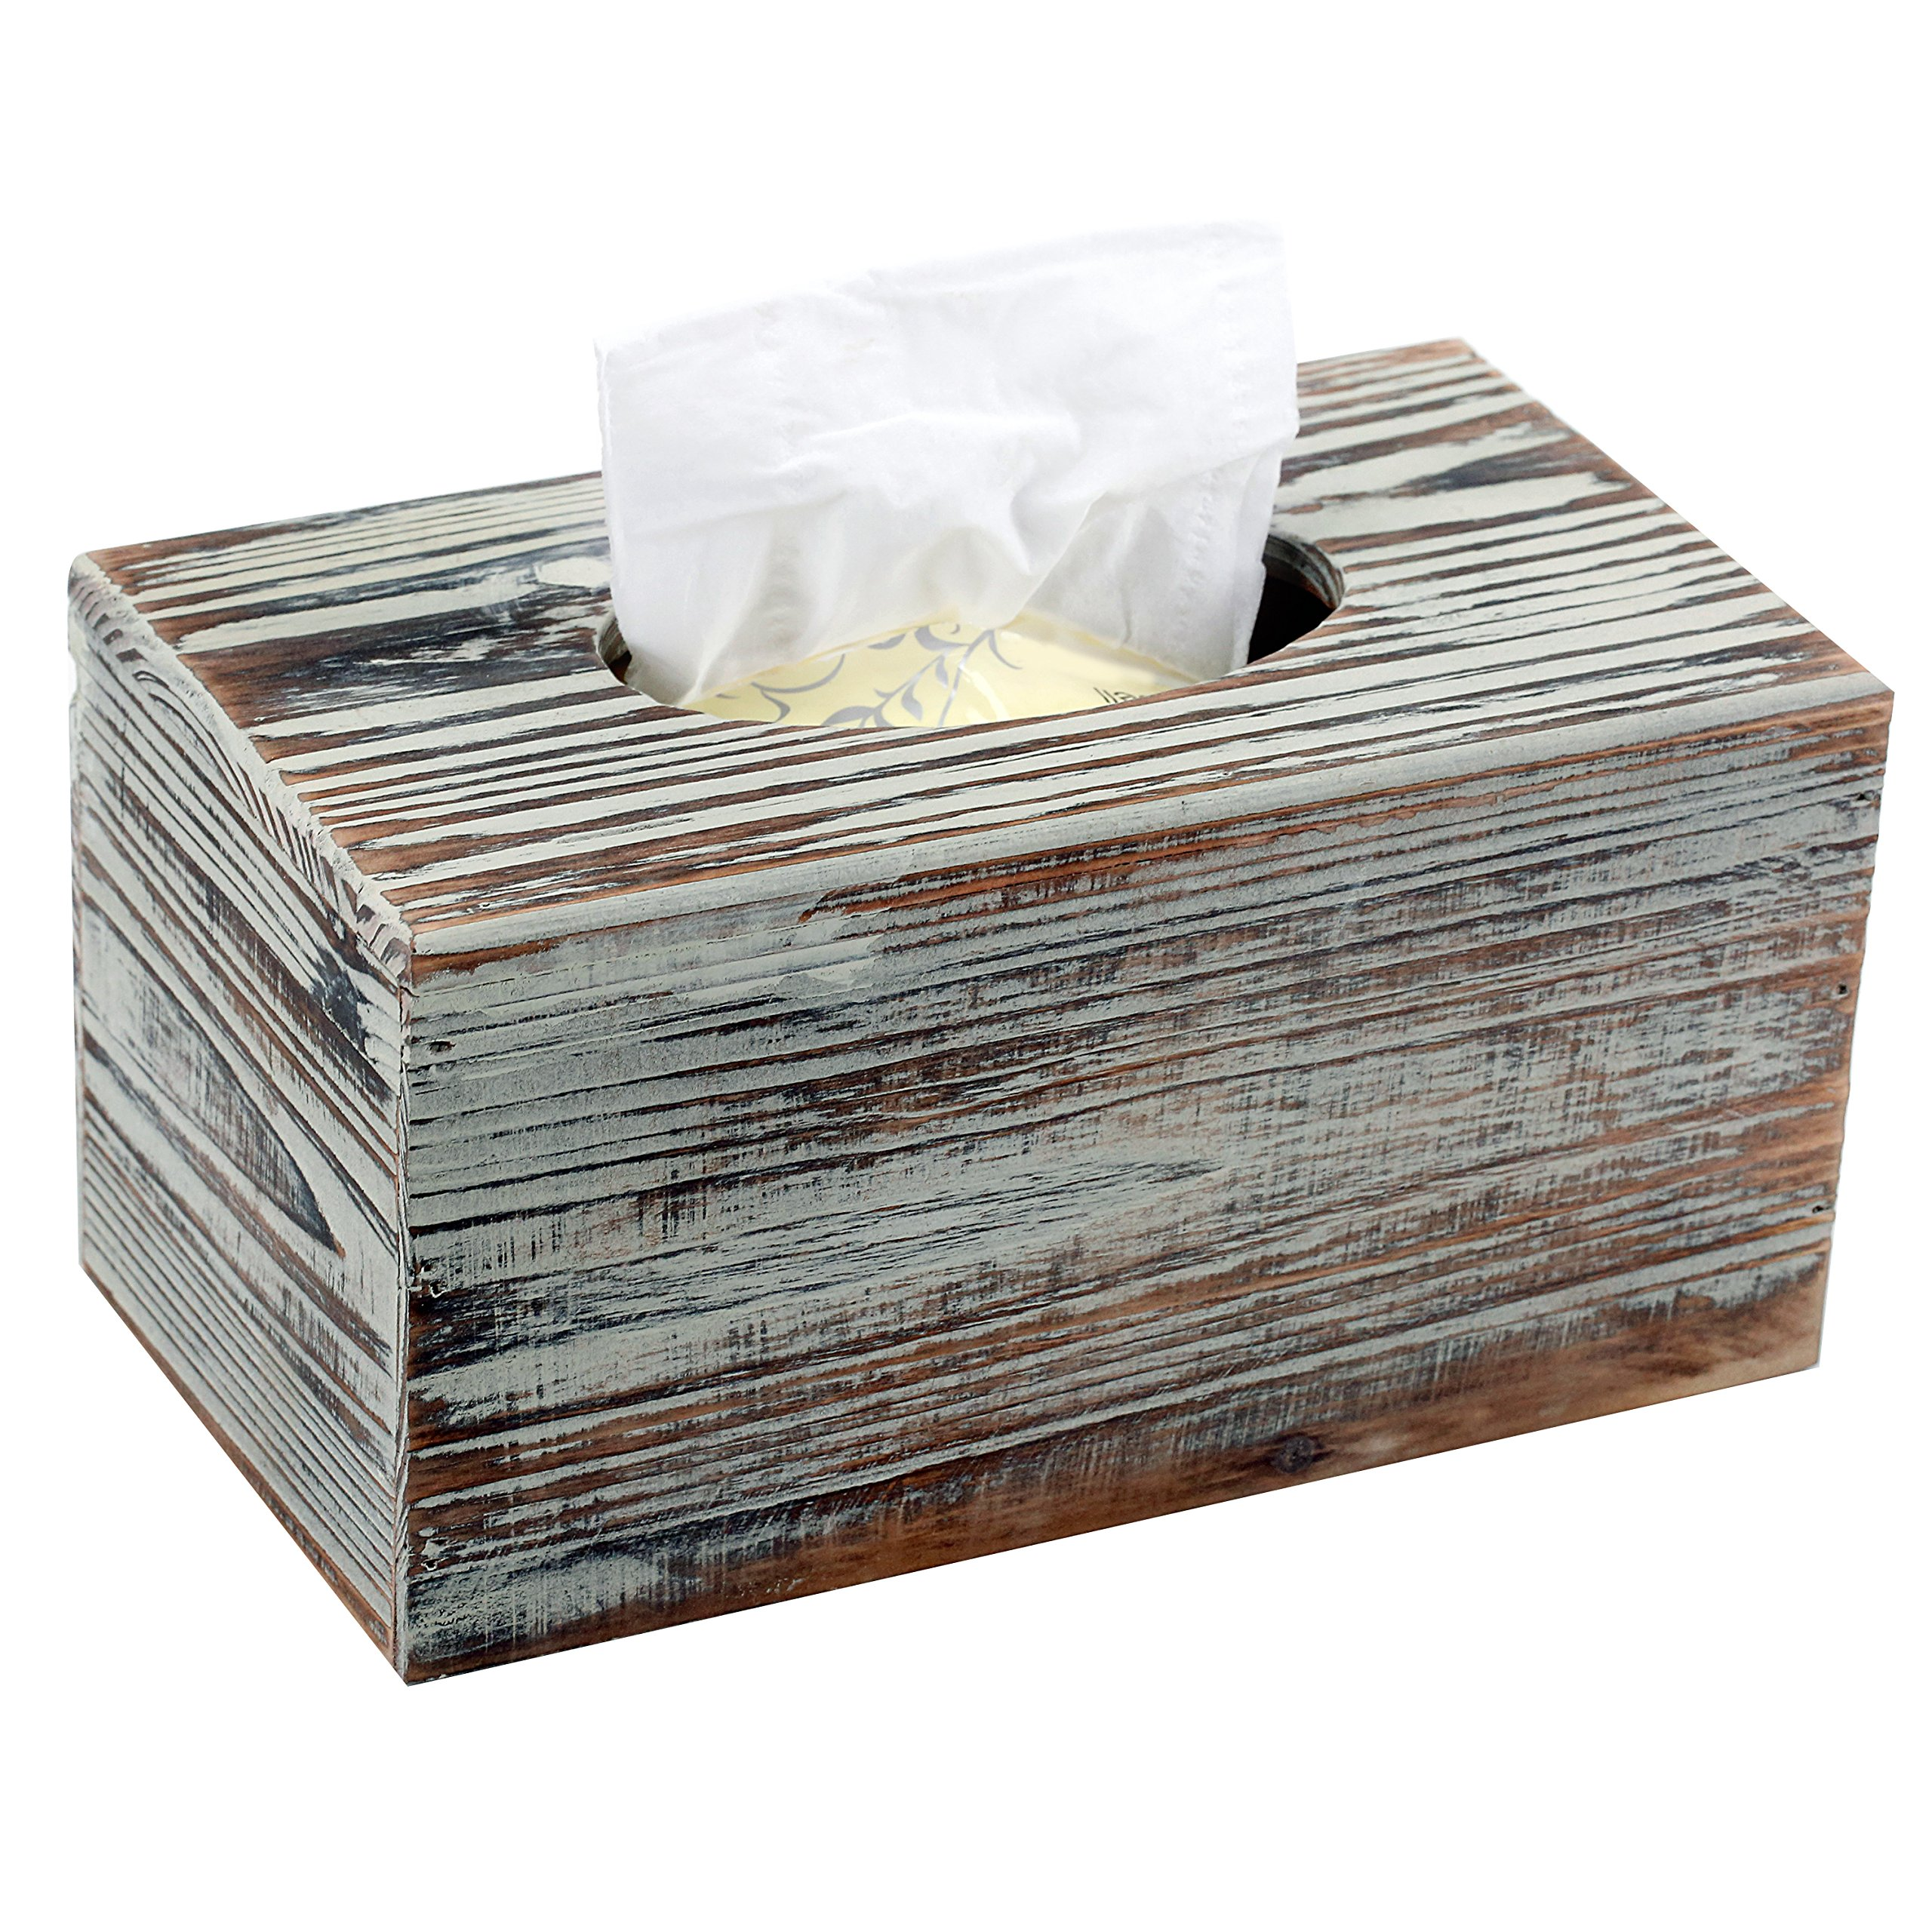 Mygift Decorative Rustic Torched Wood Rectangular Tissue Box Cover Holder